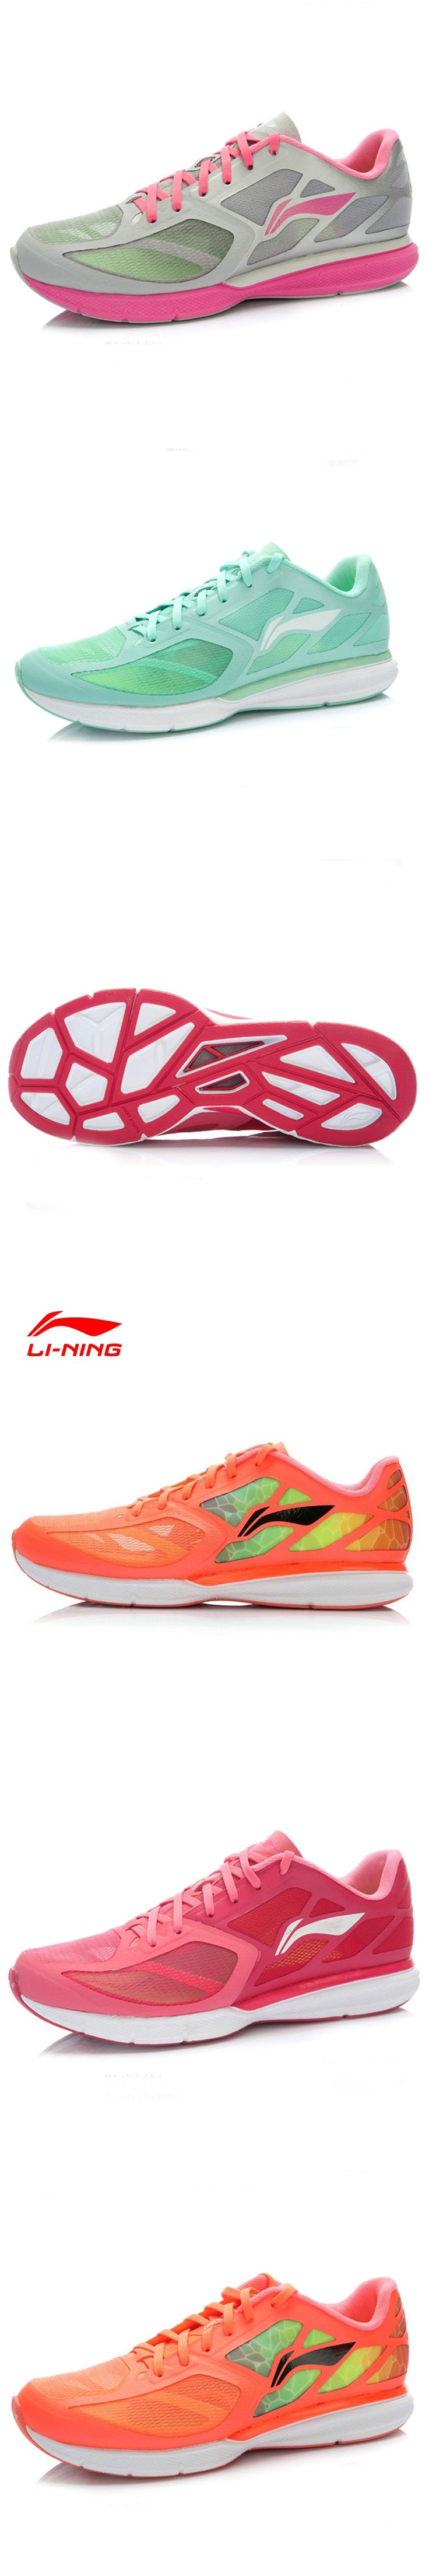 Li-Ning Running Shoes Women Outdoor Fabric Vamp Breathable Lace Up Cushioning DMX Light Sport Shoes ARBJ016 XYP049